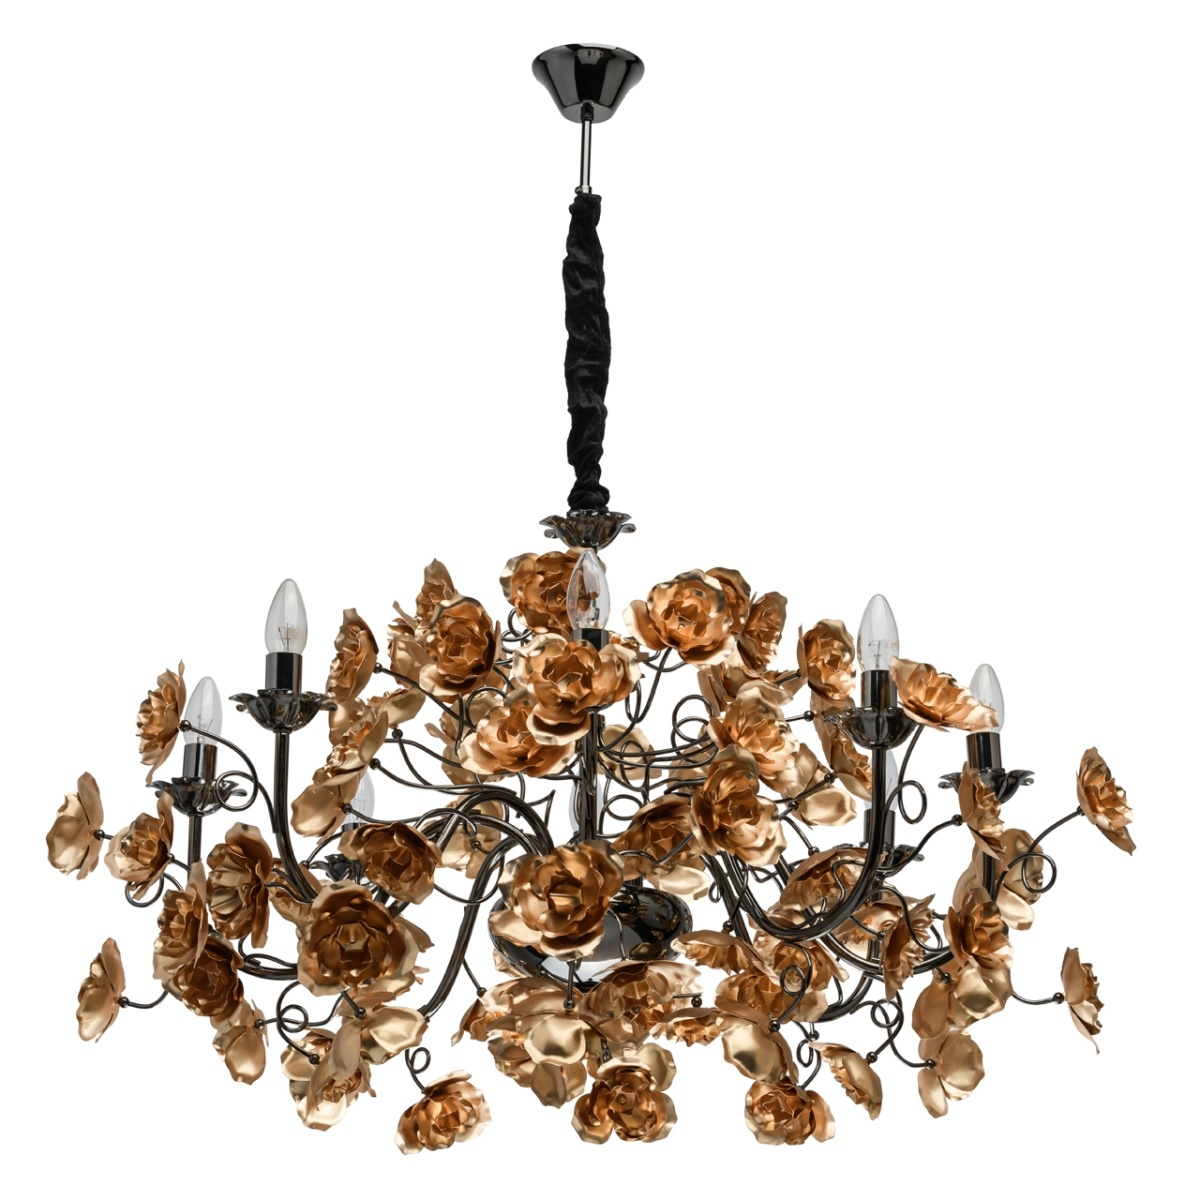 Candelabru MW-Light Flora Rosenheim 615011708 imagine